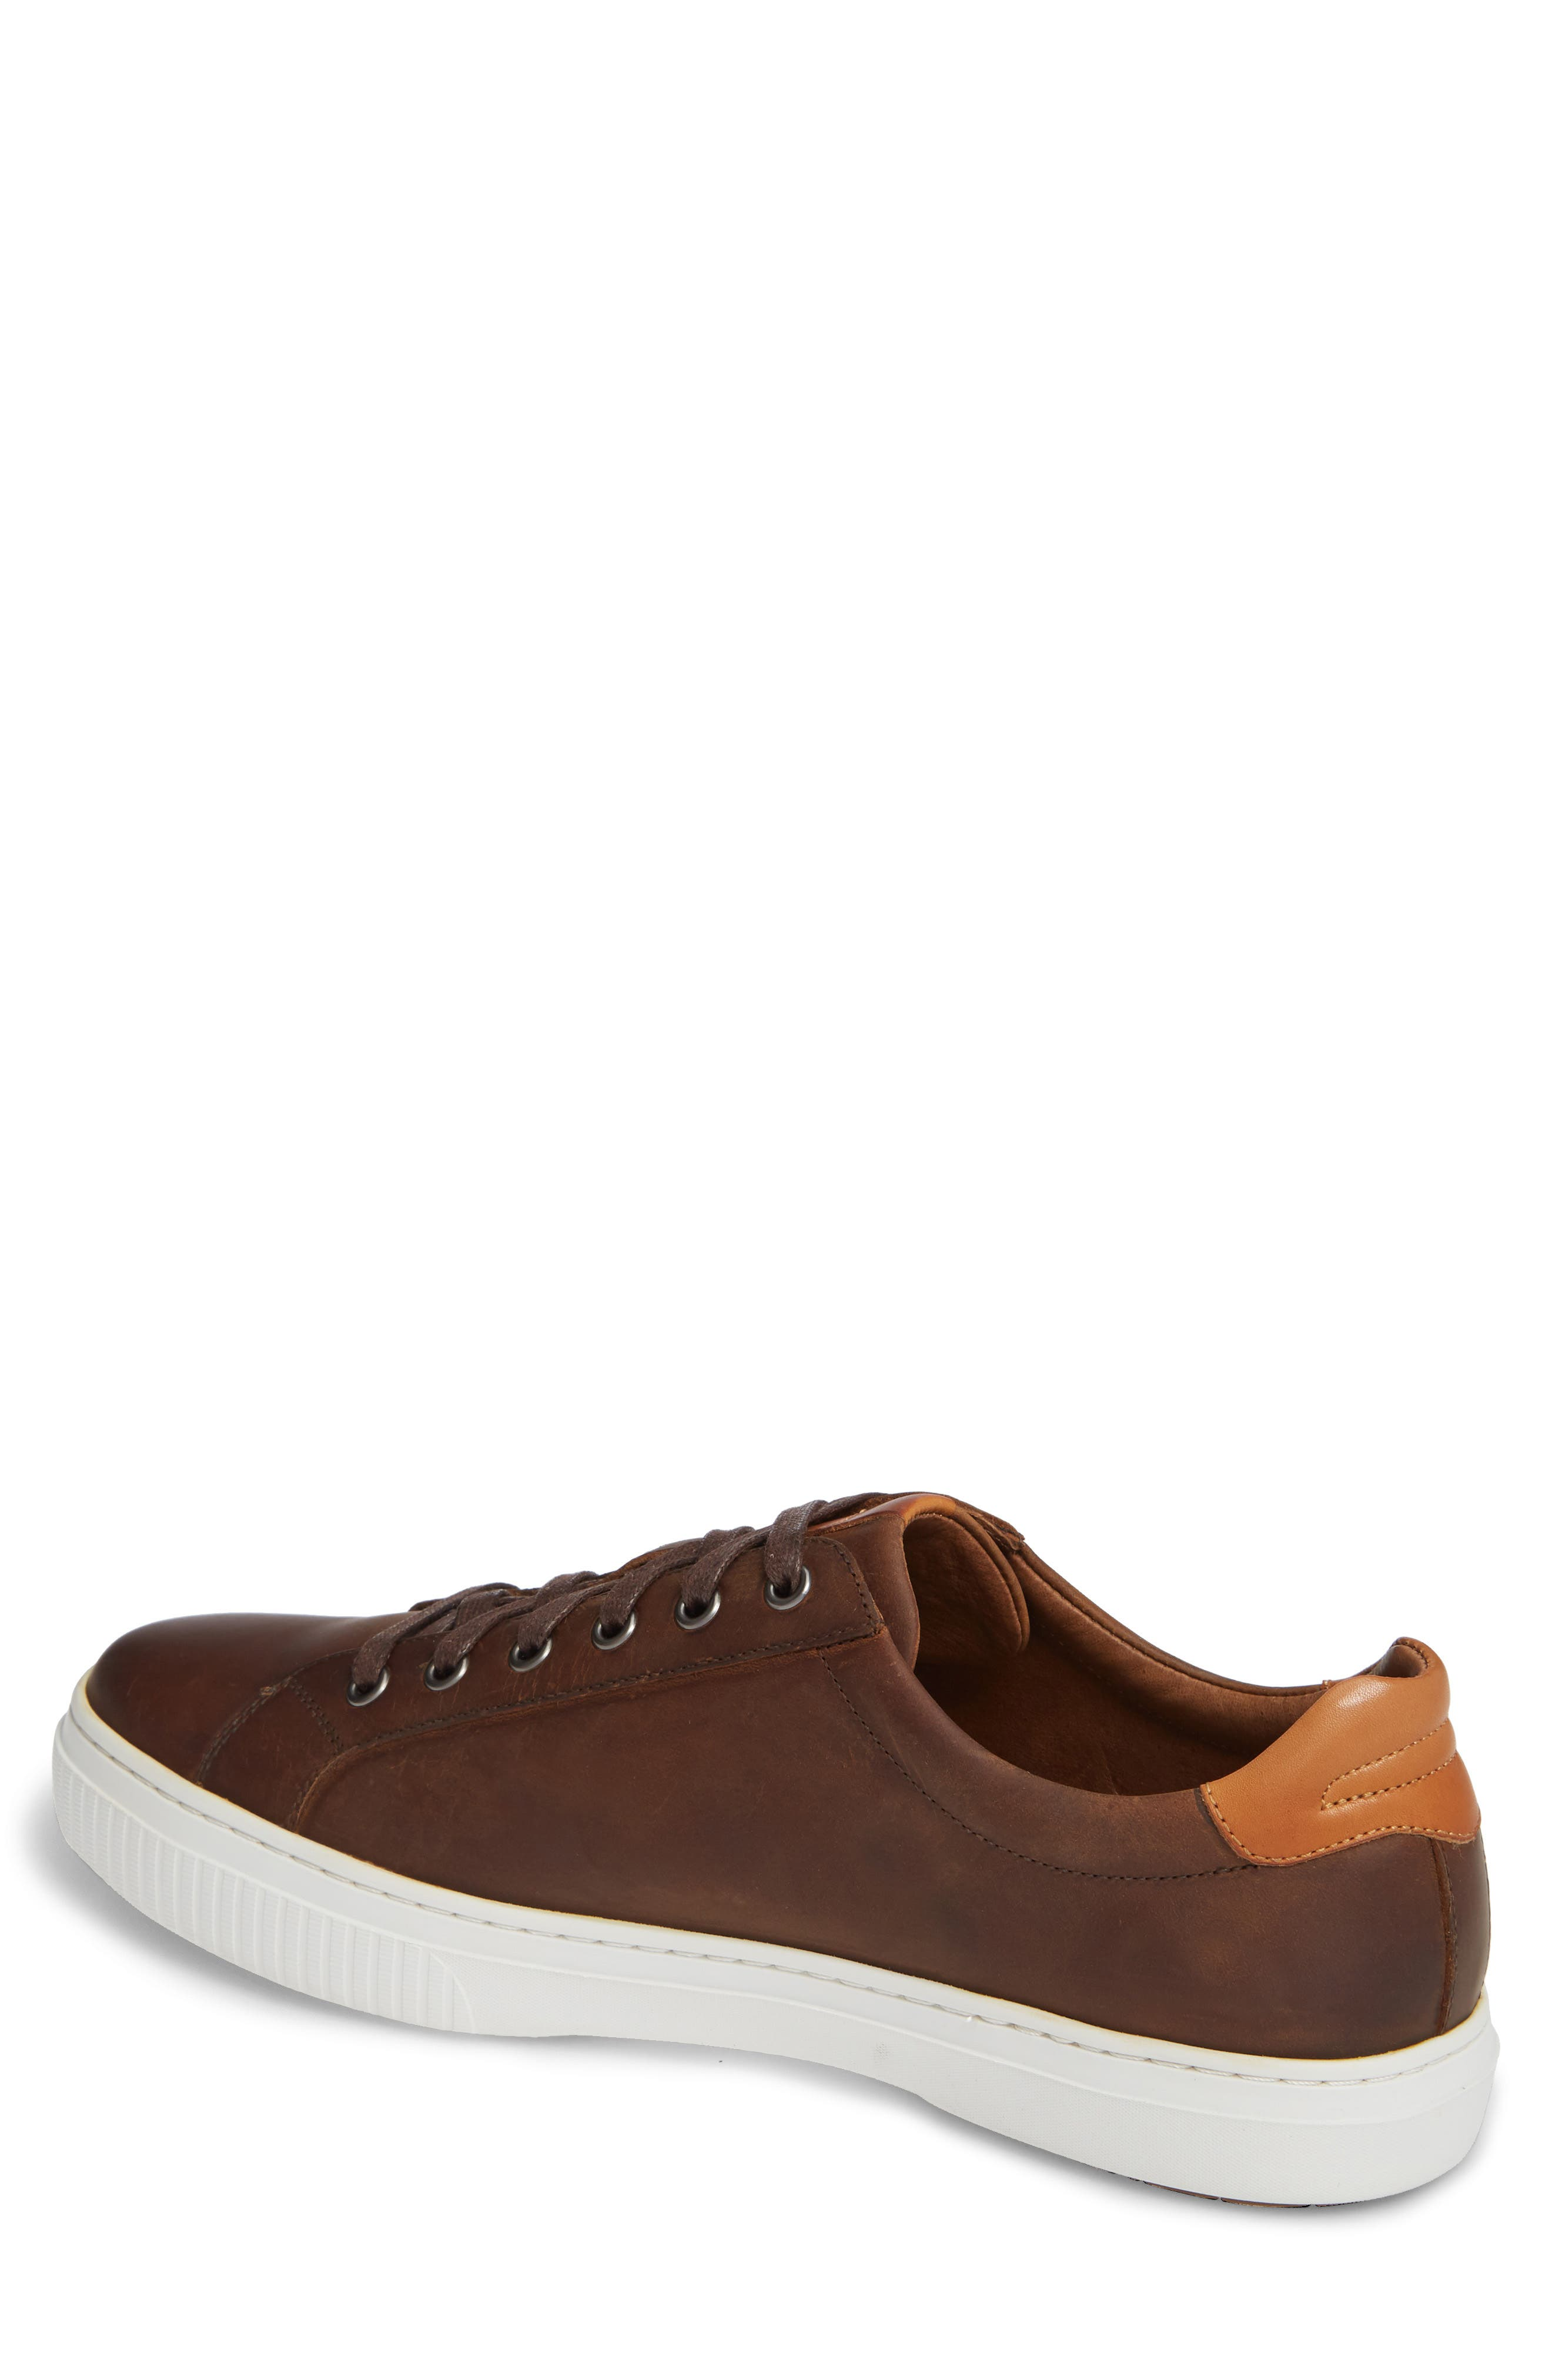 Toliver Low Top Sneaker,                             Alternate thumbnail 2, color,                             TAN LEATHER